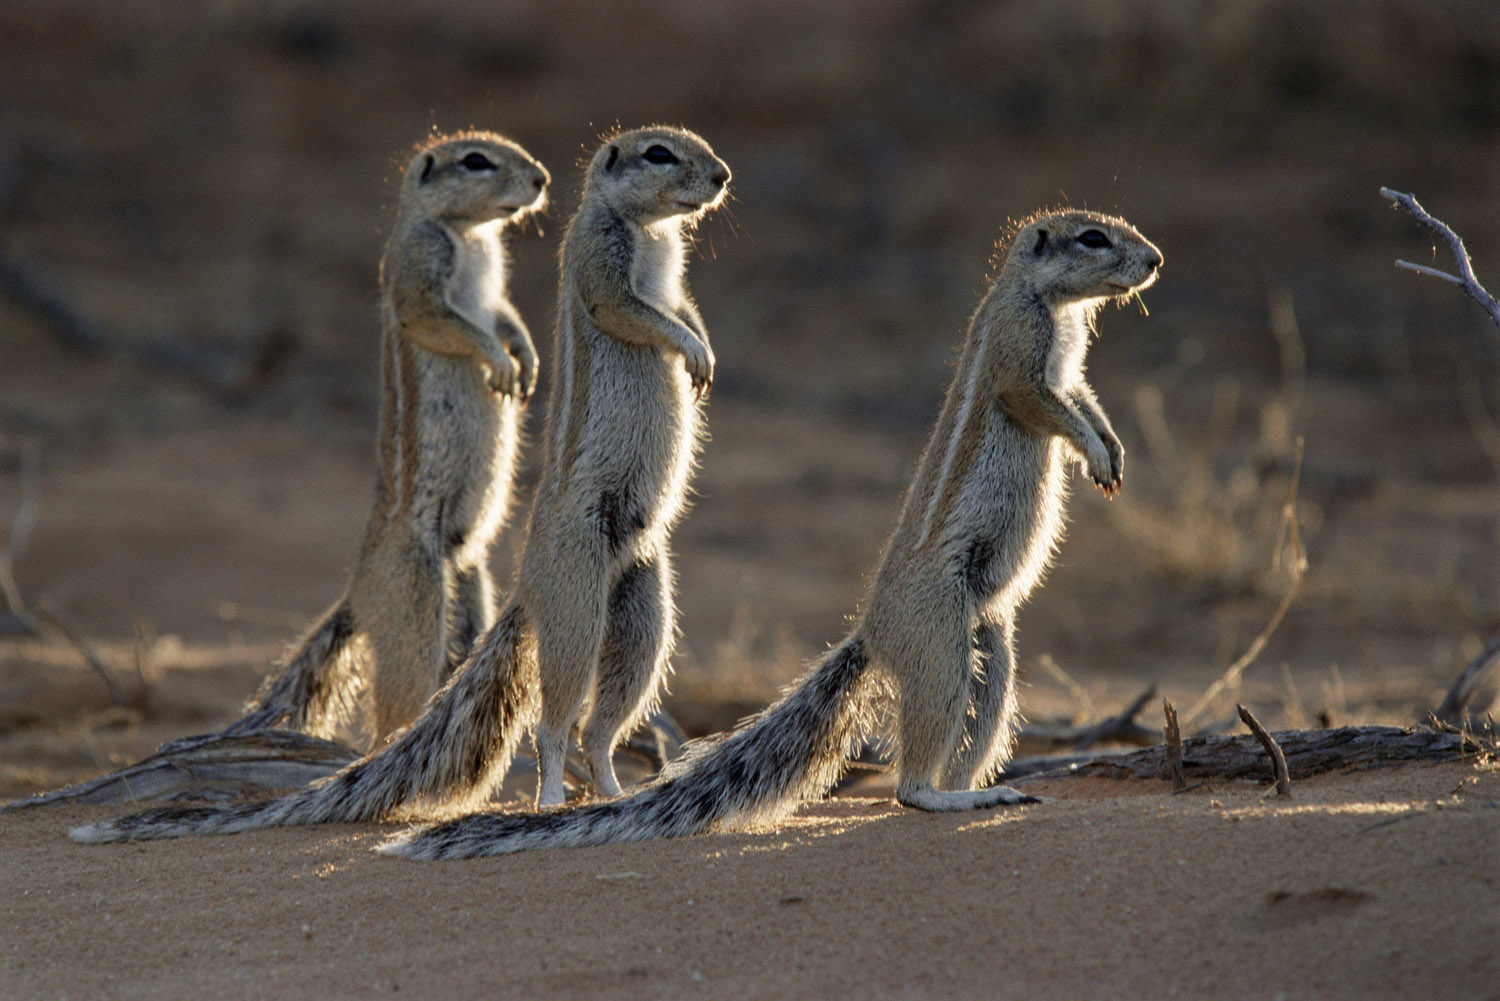 South African ground squirrels at last light, Kgalagadi Transfrontier Park, South Africa